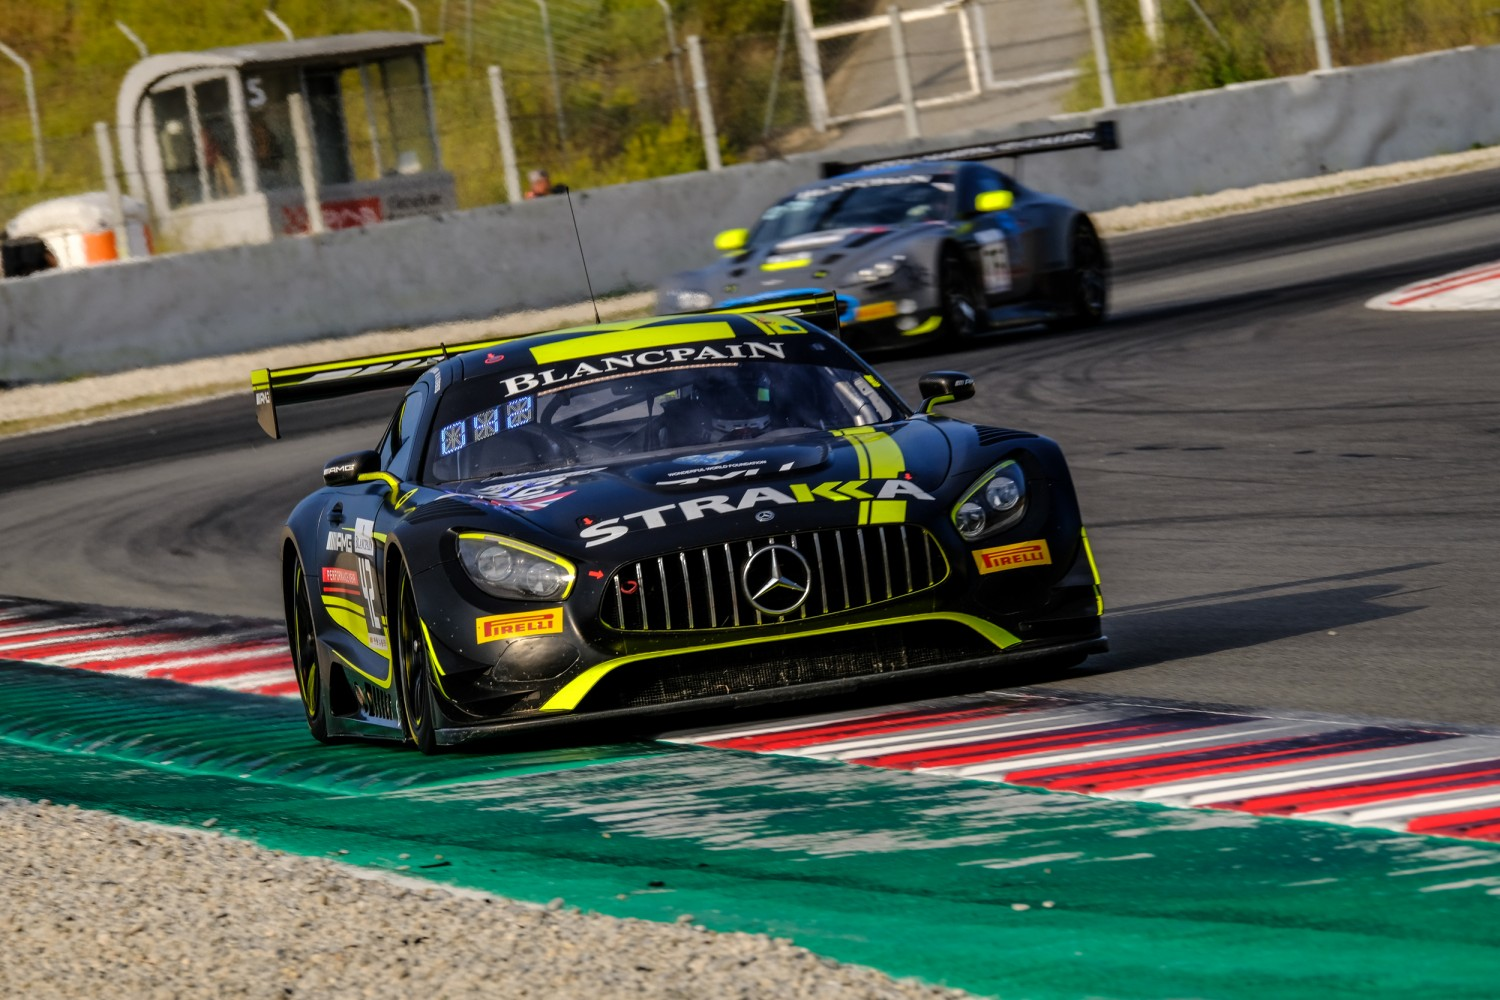 #42 Strakka Racing GBR Mercedes-AMG GT3 Pro-Am Cup Chris Buncombe GBR Nick Leventis GBR Lewis Williamson GBR, Qualifying  | SRO / Dirk Bogaerts Photography